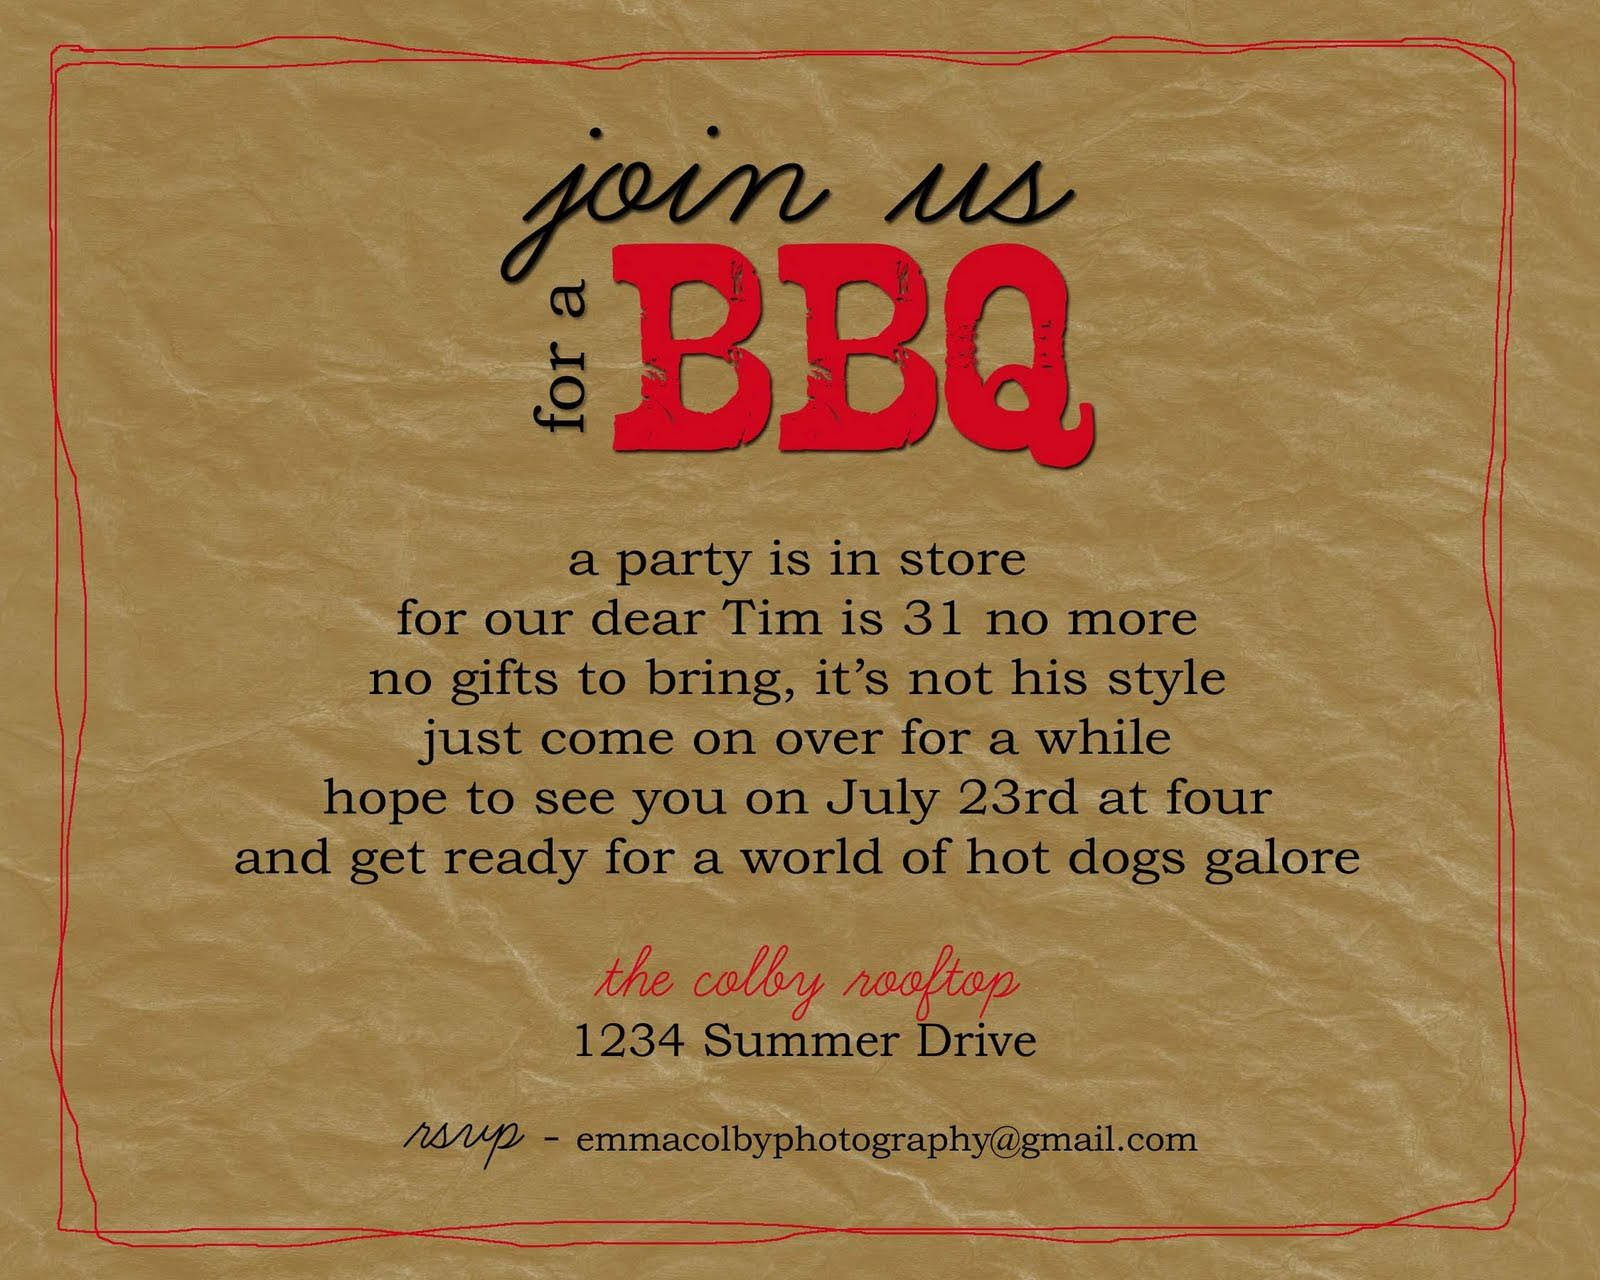 Bbq party invitation wording bbq pinterest stopboris Image collections